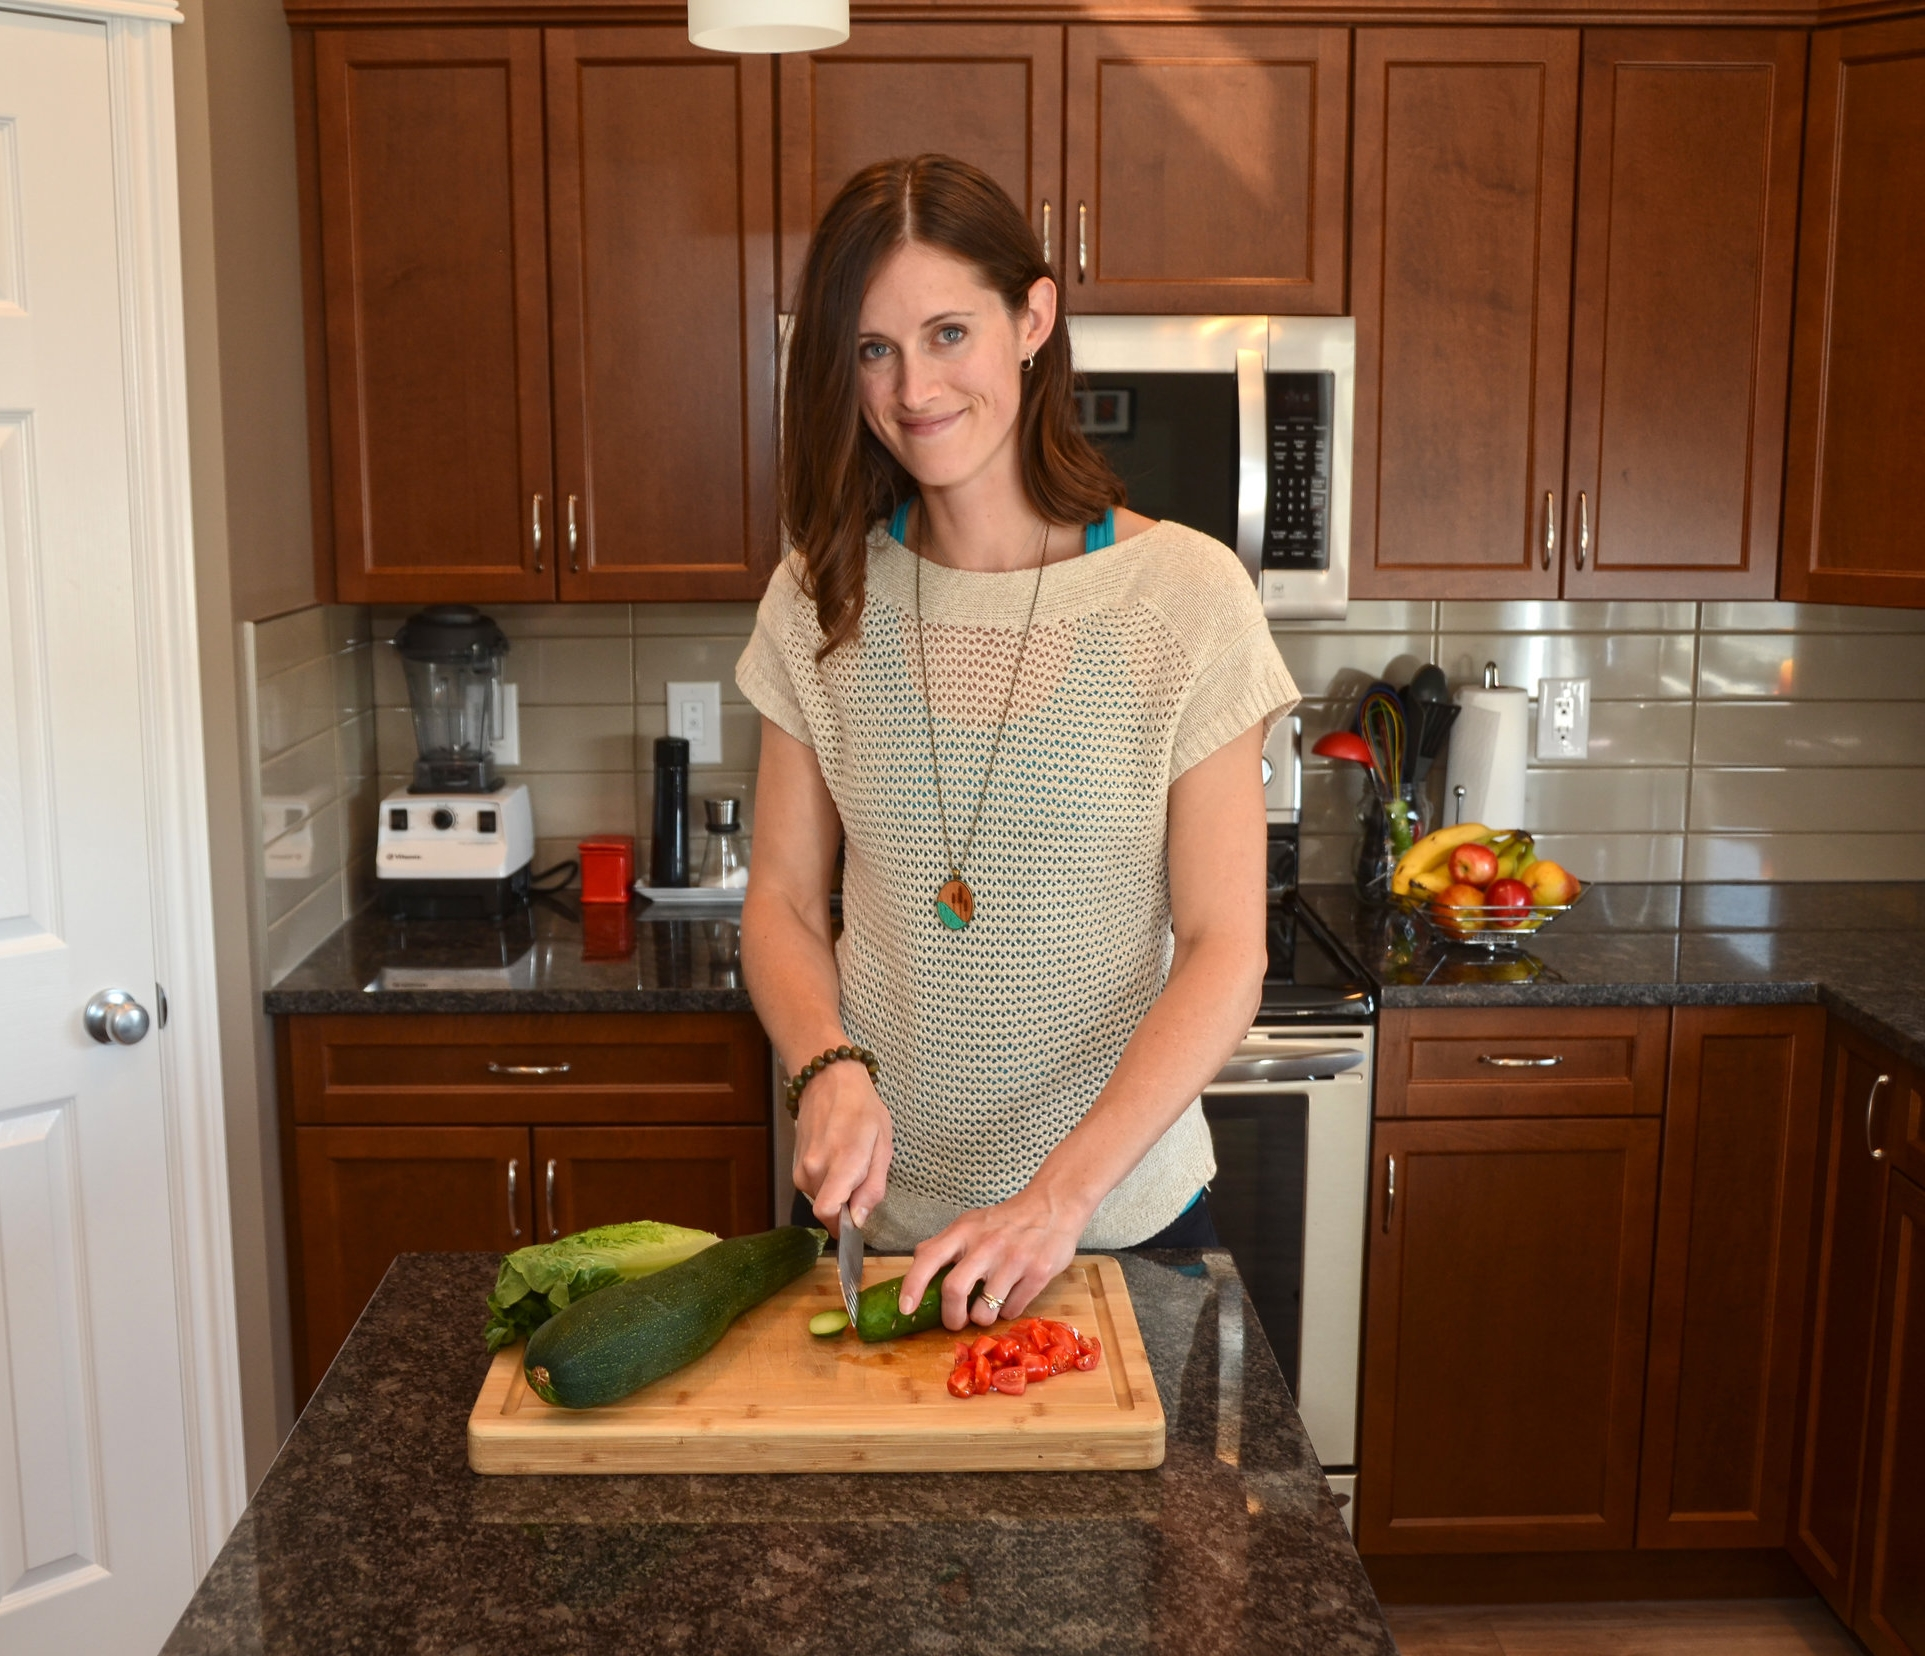 SOMETHING NUTRISHUS & WHAT RDS DO - hosted by Brooke Bulloch